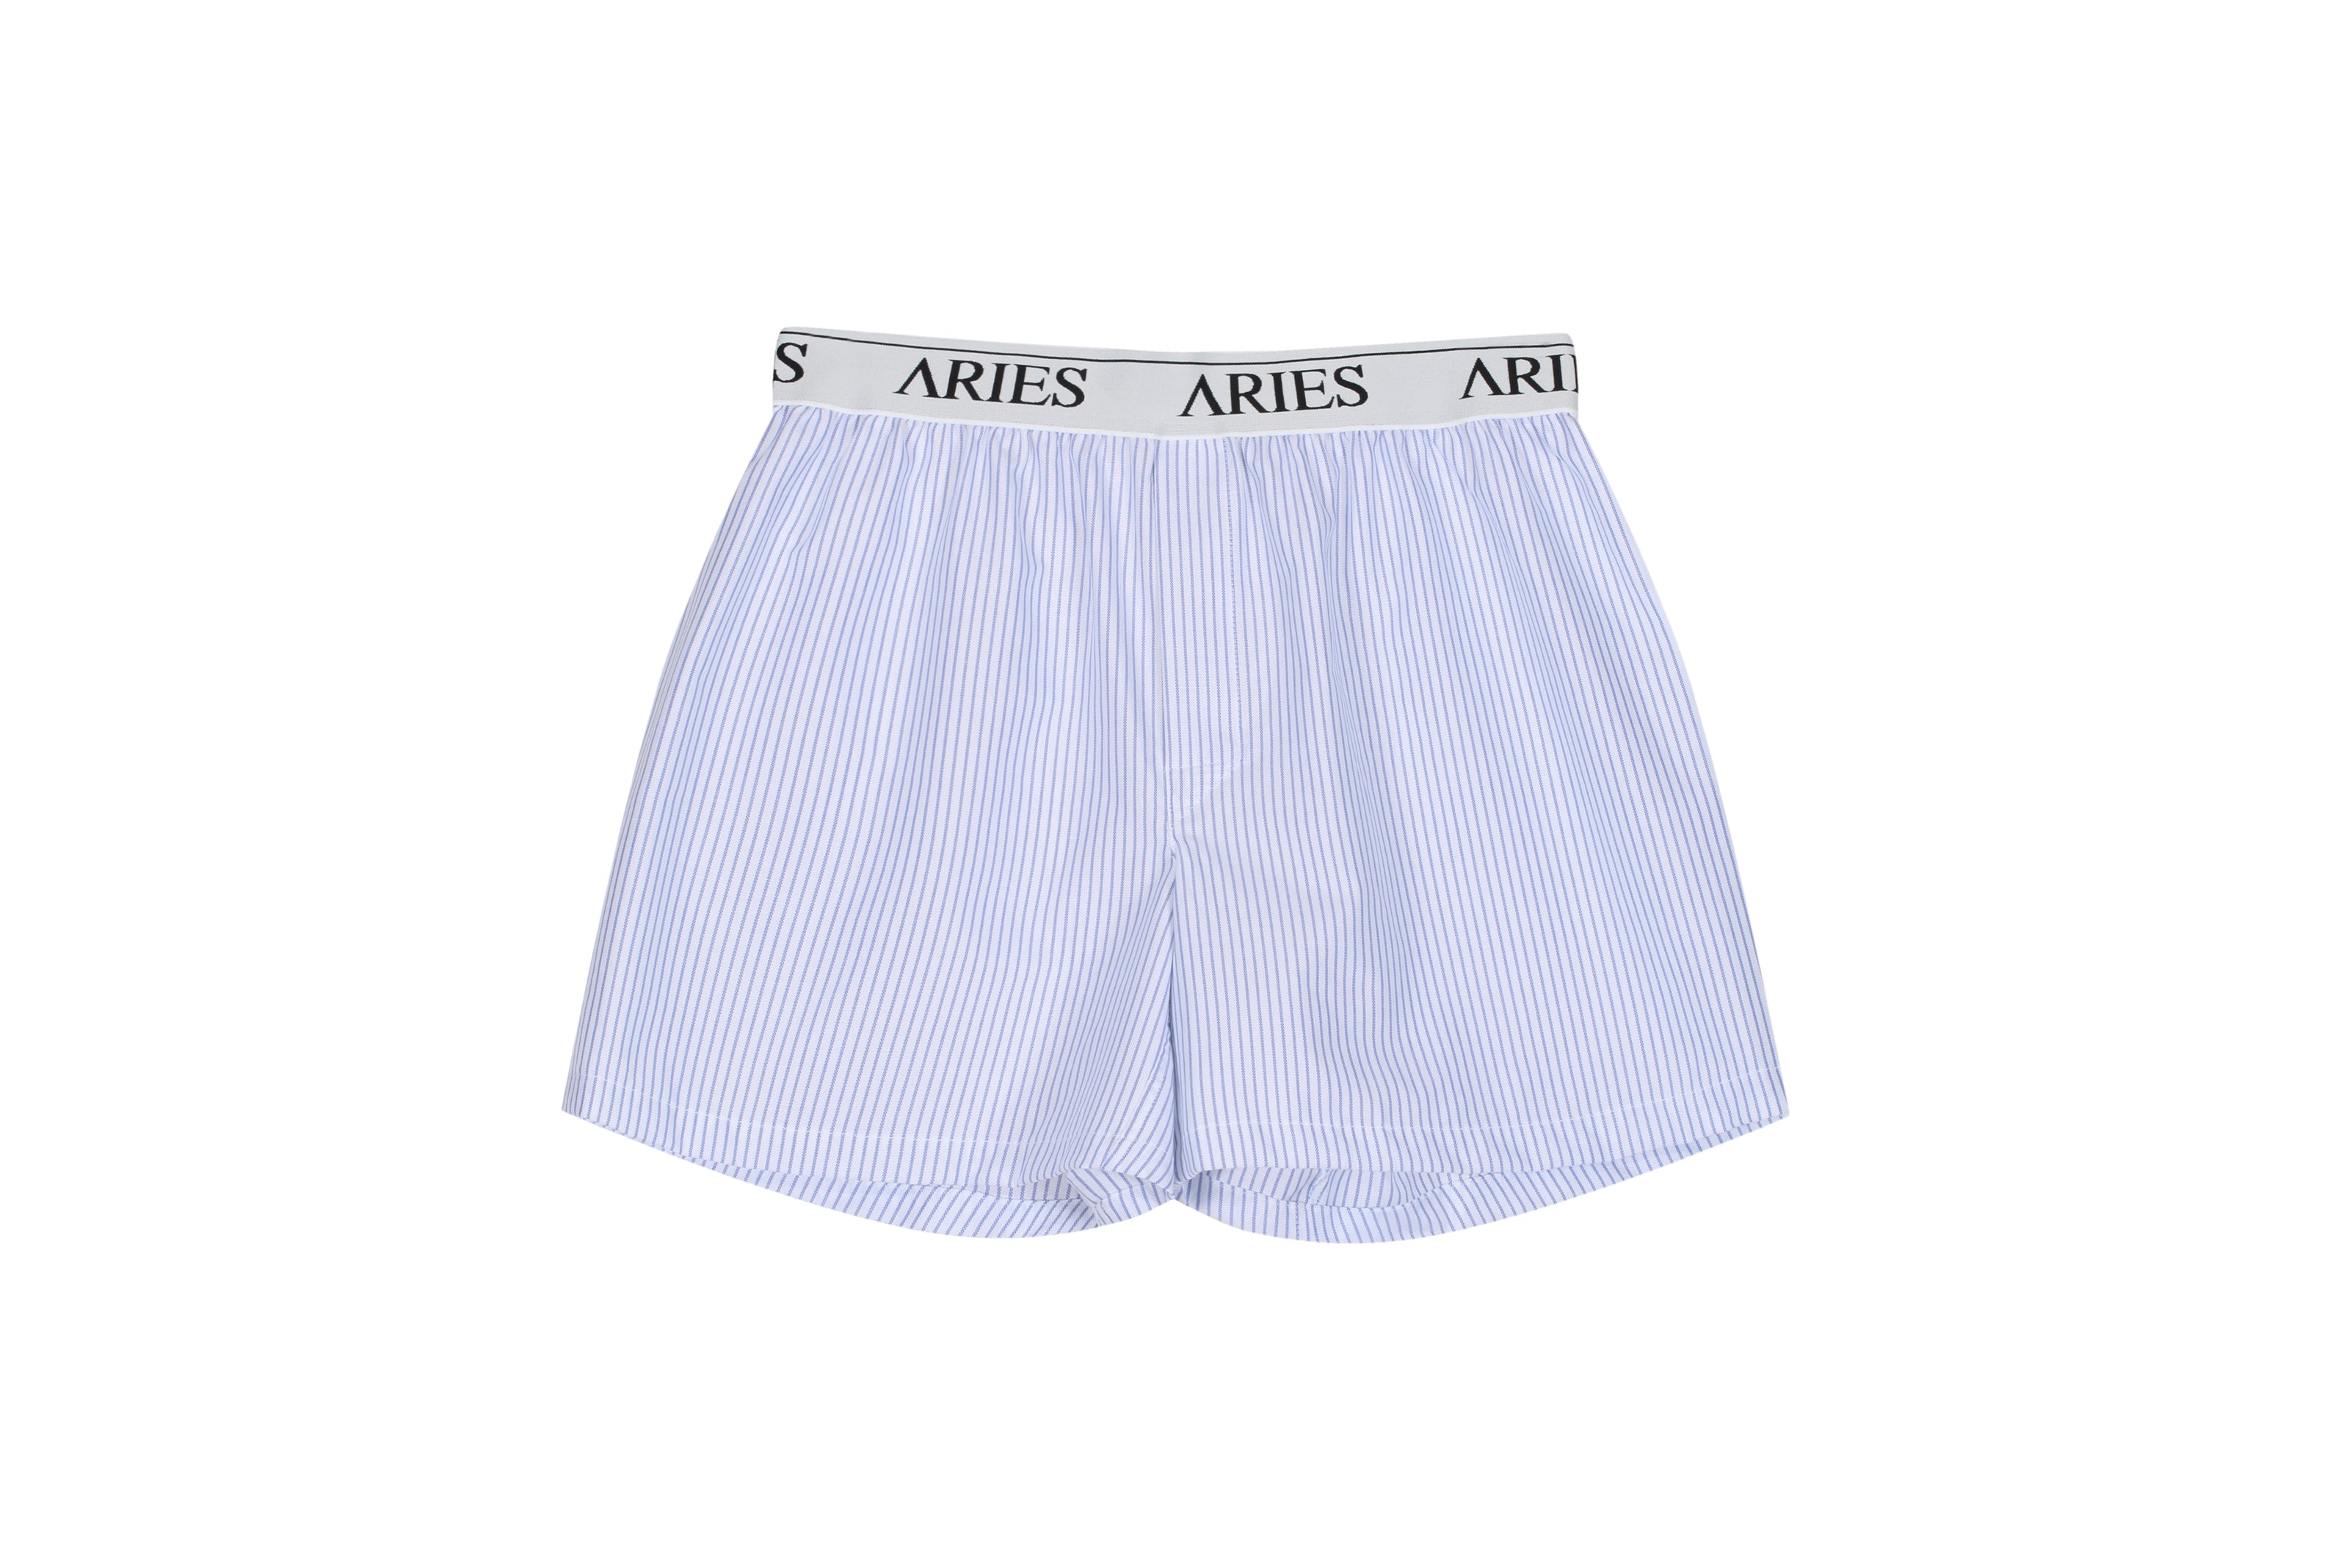 Aries Narrow Stripe Boxer Shorts